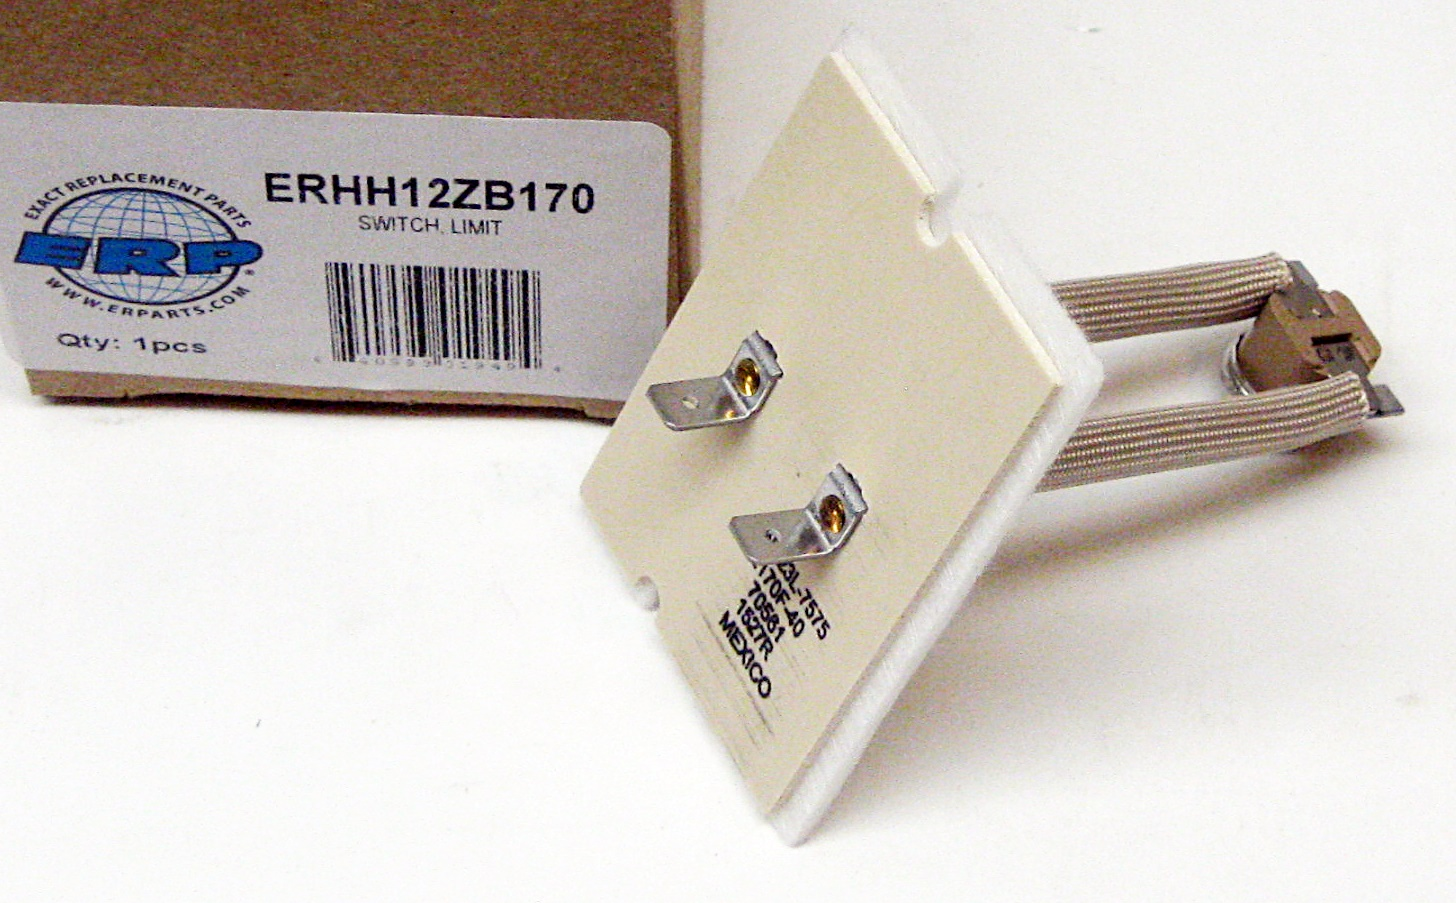 HH12ZB170 Bryant OEM Furnace 3 Replacement Limit Switch L170-40